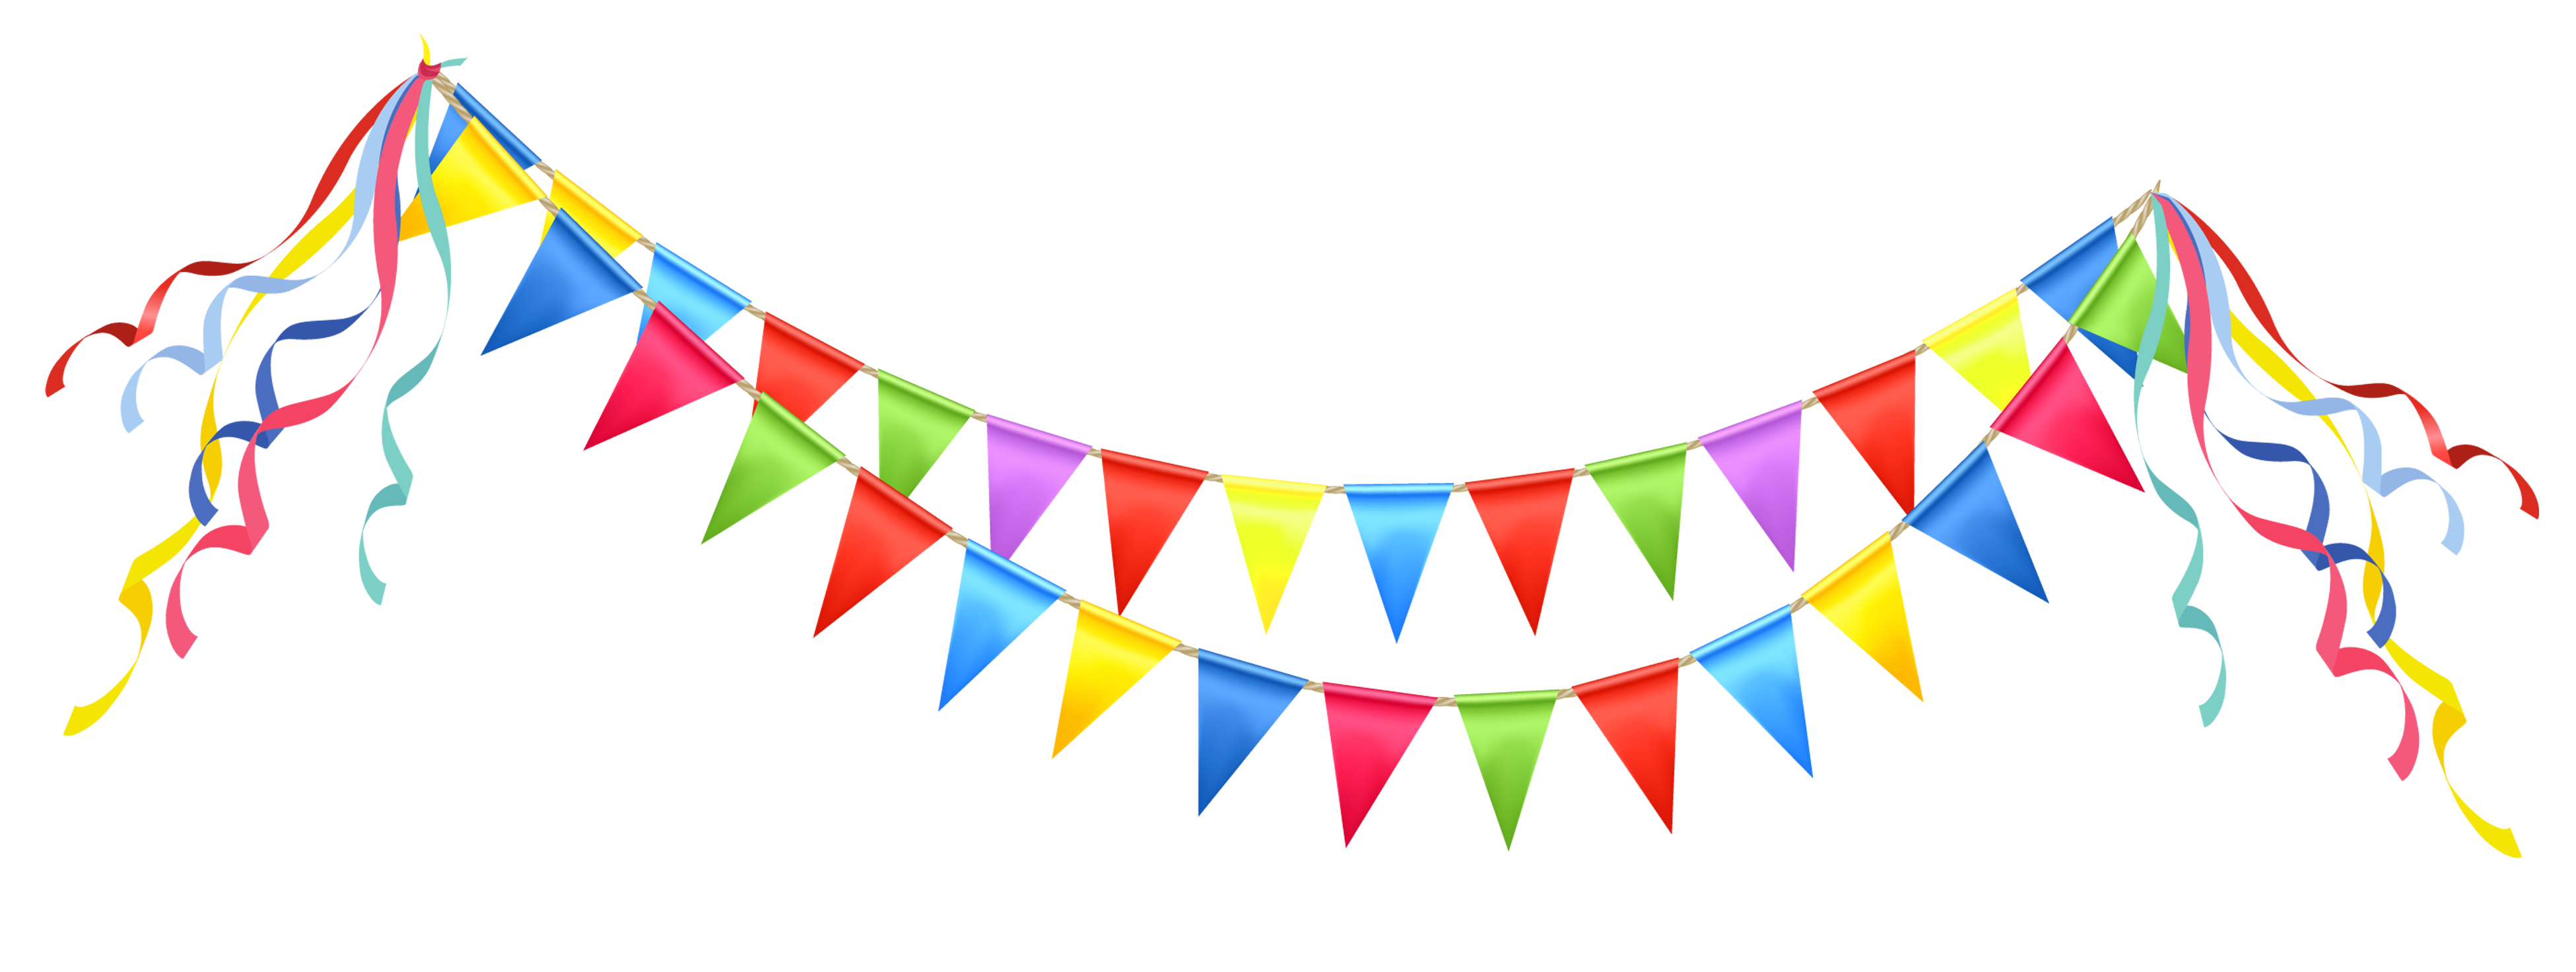 Celebrate clipart party.  collection of transparent